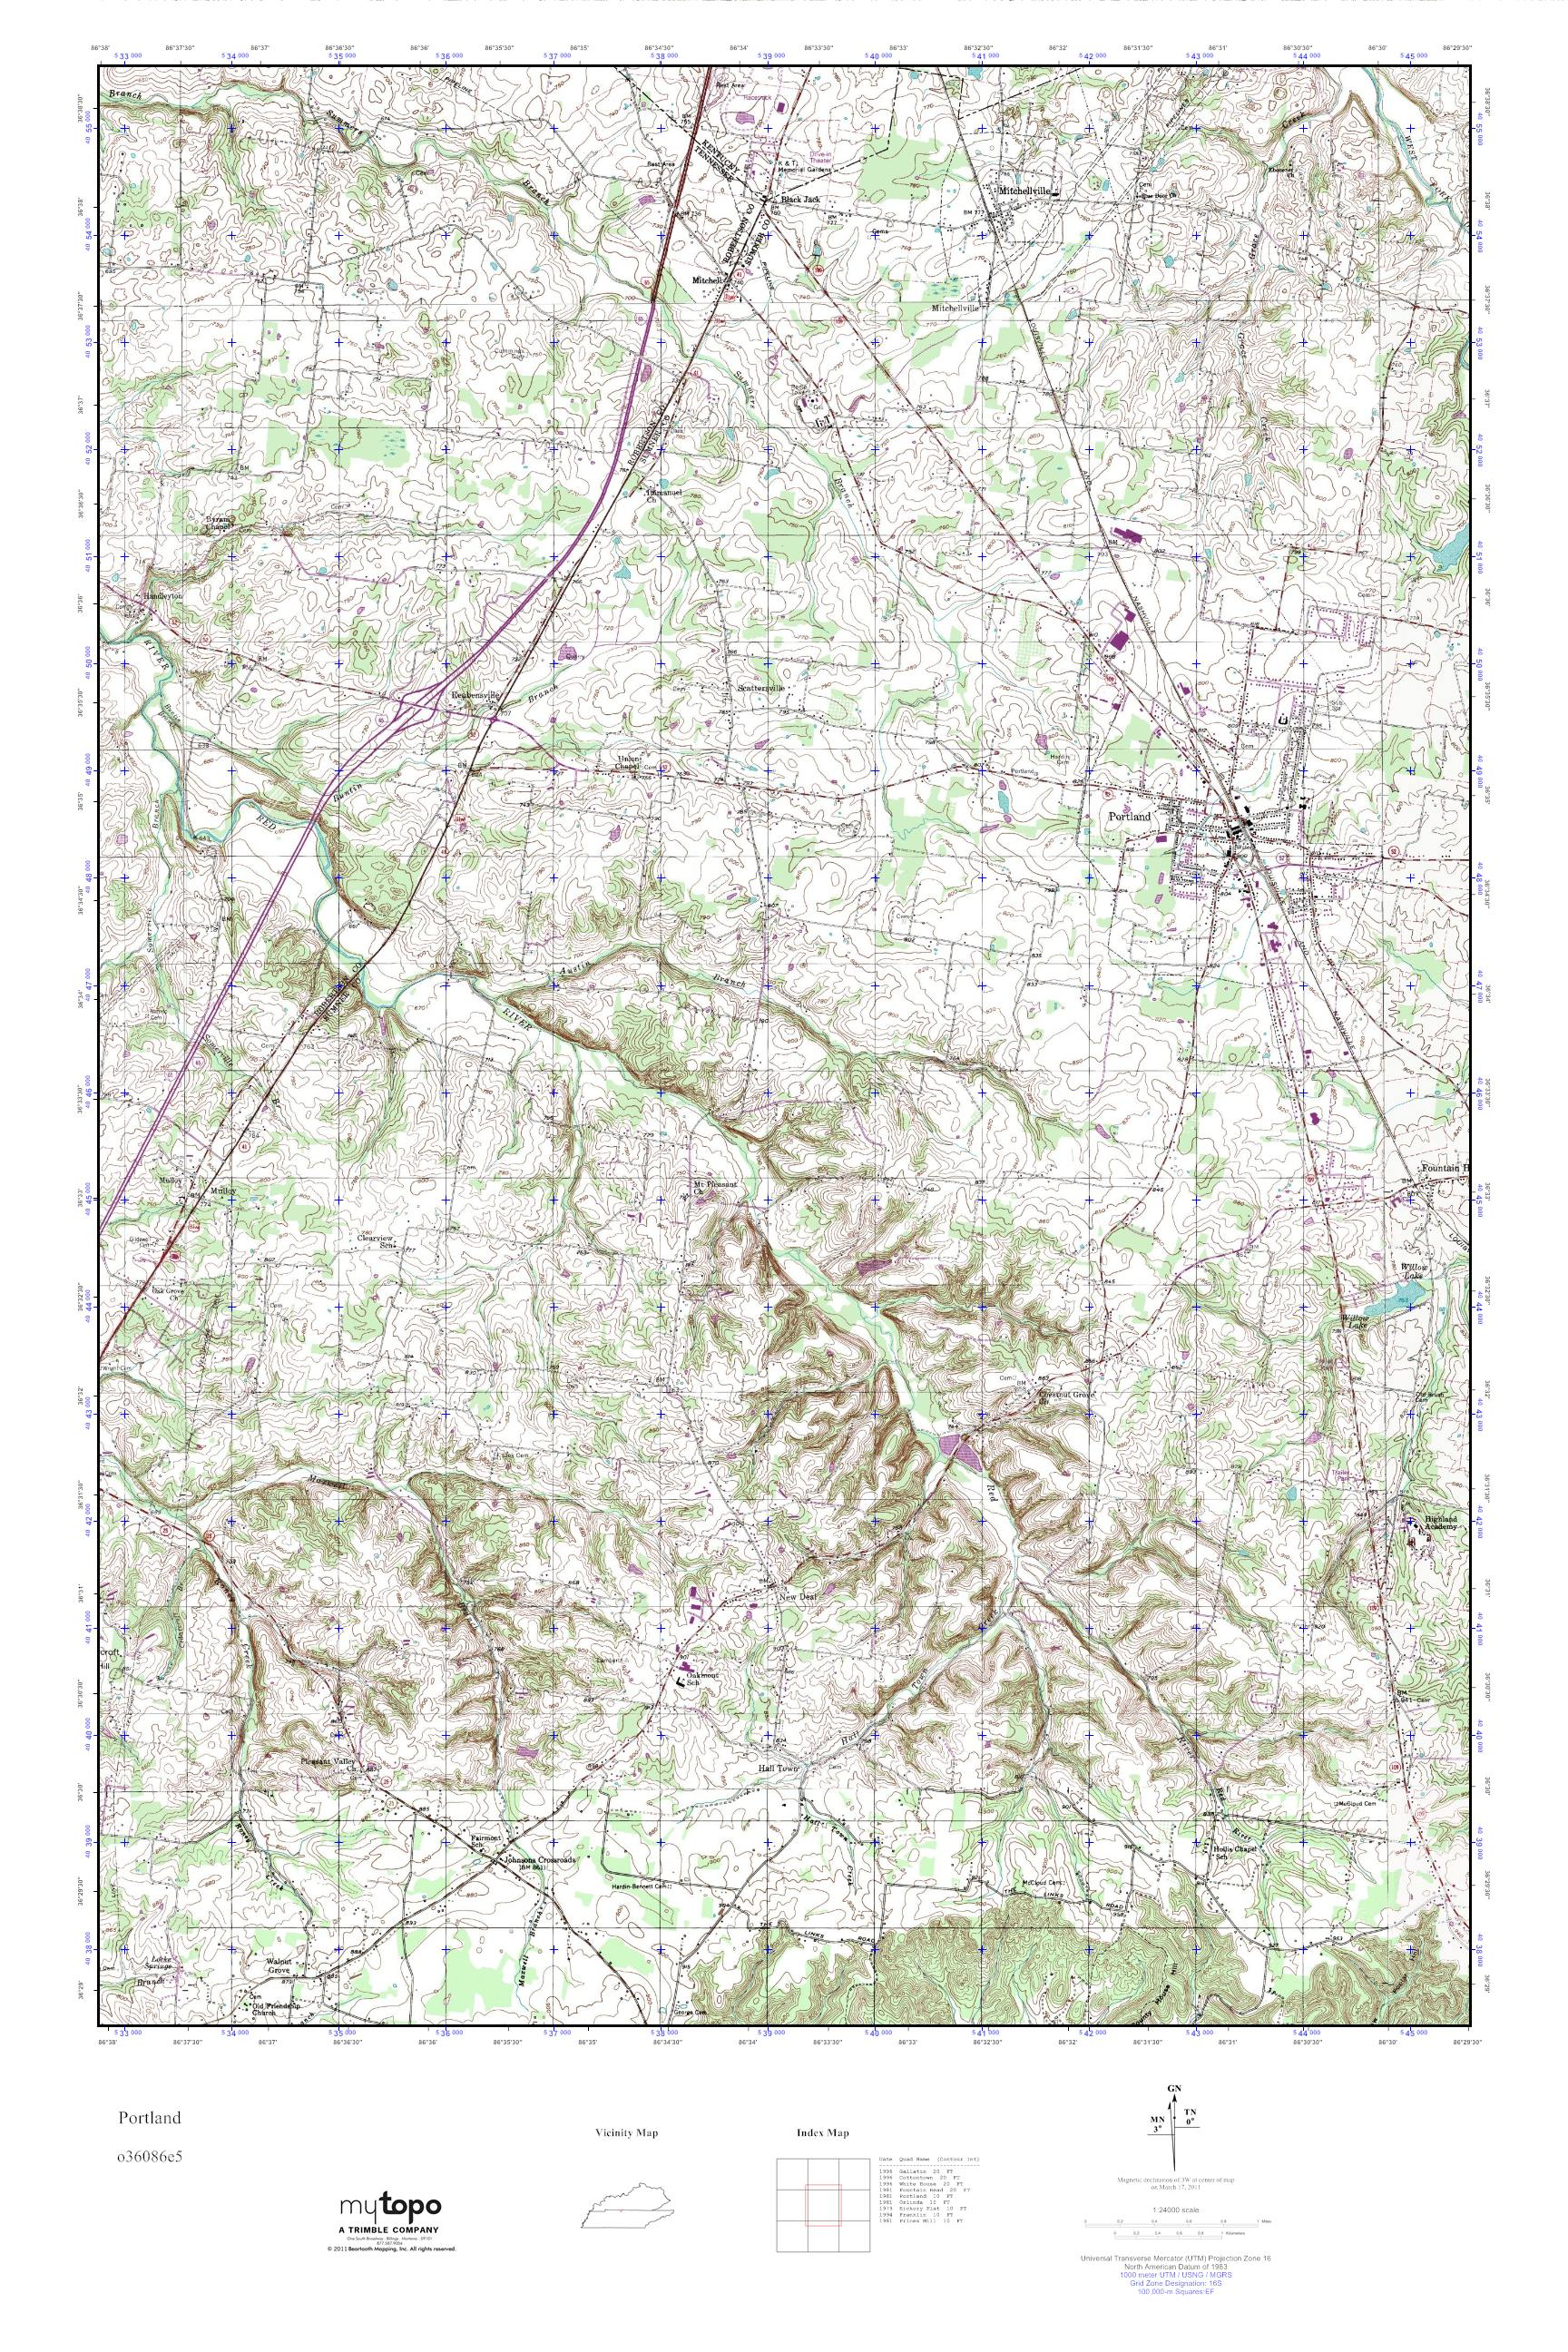 Portland Tennessee Map.Mytopo Portland Tennessee Usgs Quad Topo Map